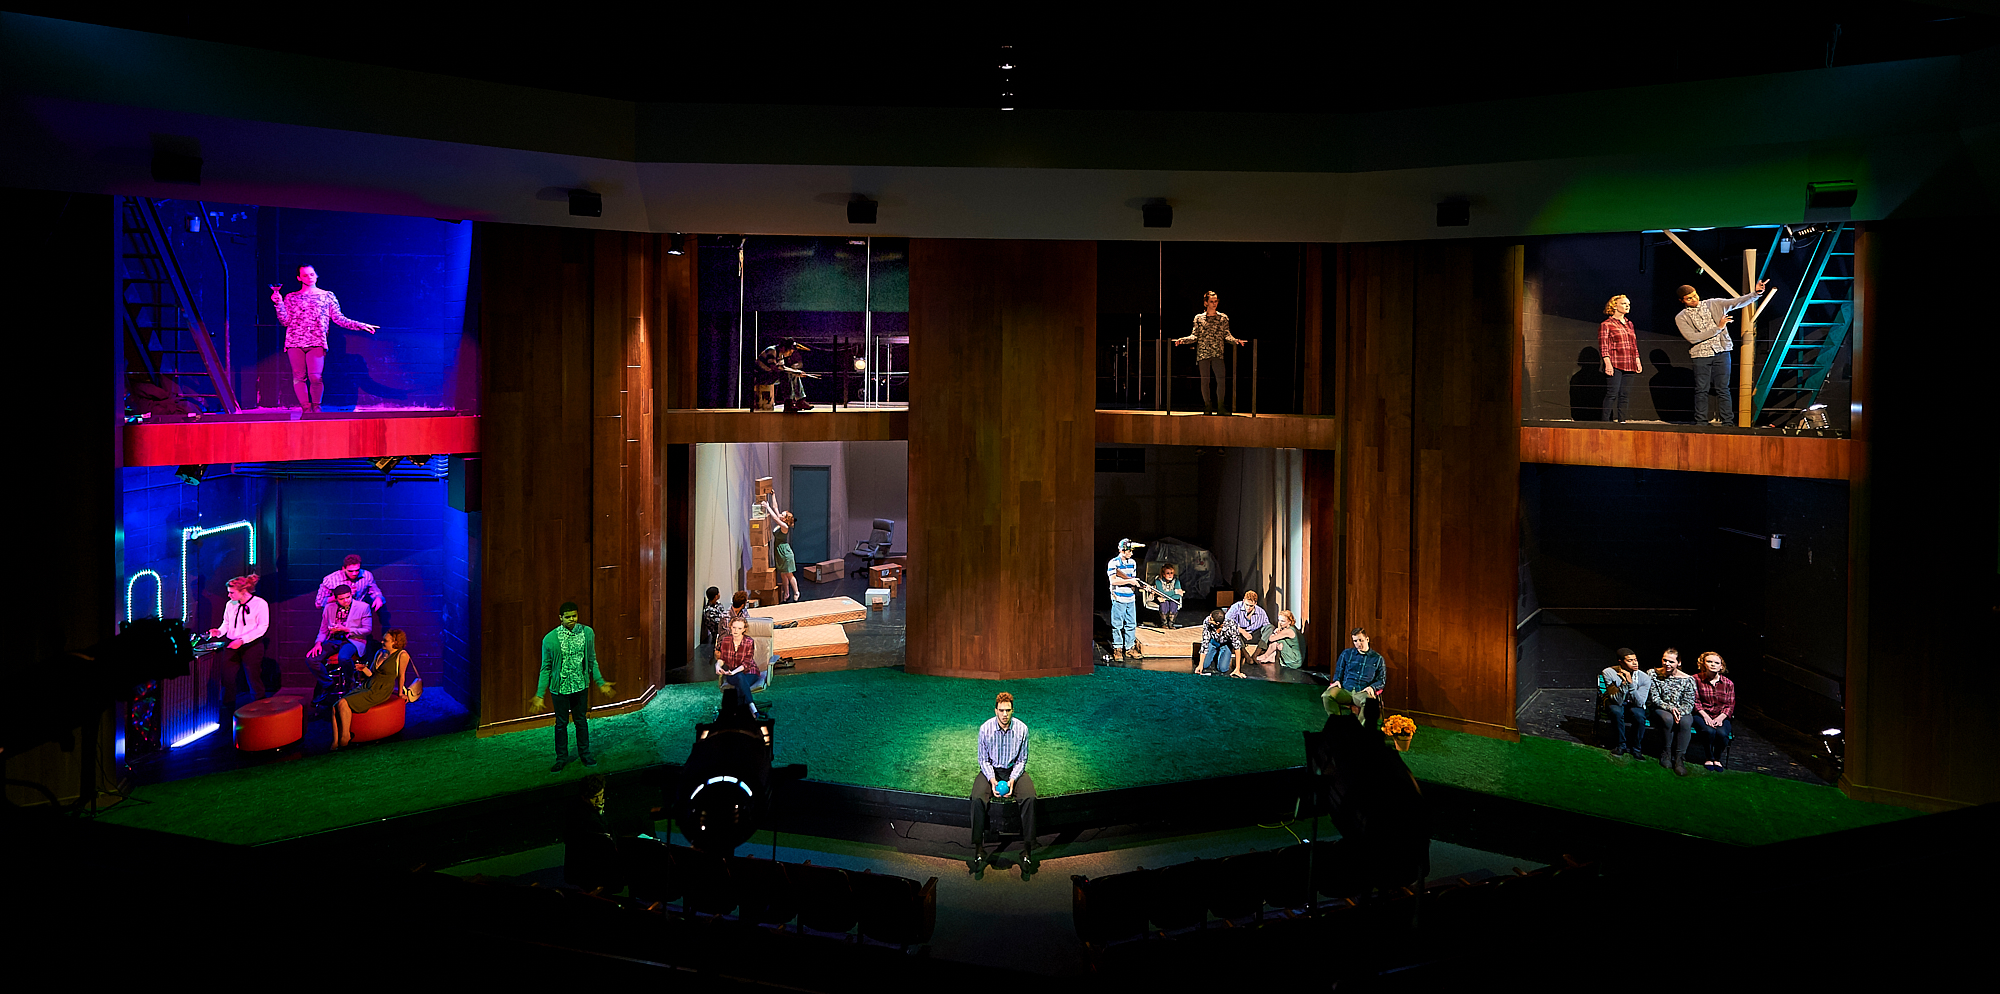 "Composite image of Colgate University theater students contemporaneously performing the scenes from their spring production of A Map of Virtue, an Obbie award winning new American play by Erin Courtney. Directed by April Sweeney, Scenic and Costume Design by Anya Klepikov, Sound Design by Mike ""Dnksongs"" Weiss, Lighting Design by Jason Alexander '17, Performers - Dawdon Highland '19, Tanner Holley '16, Kit Keane '19, Tyler Maxie '18, Curtis Mitchell '18, Fjordi Mulla '19, Allison Spanyer '16"